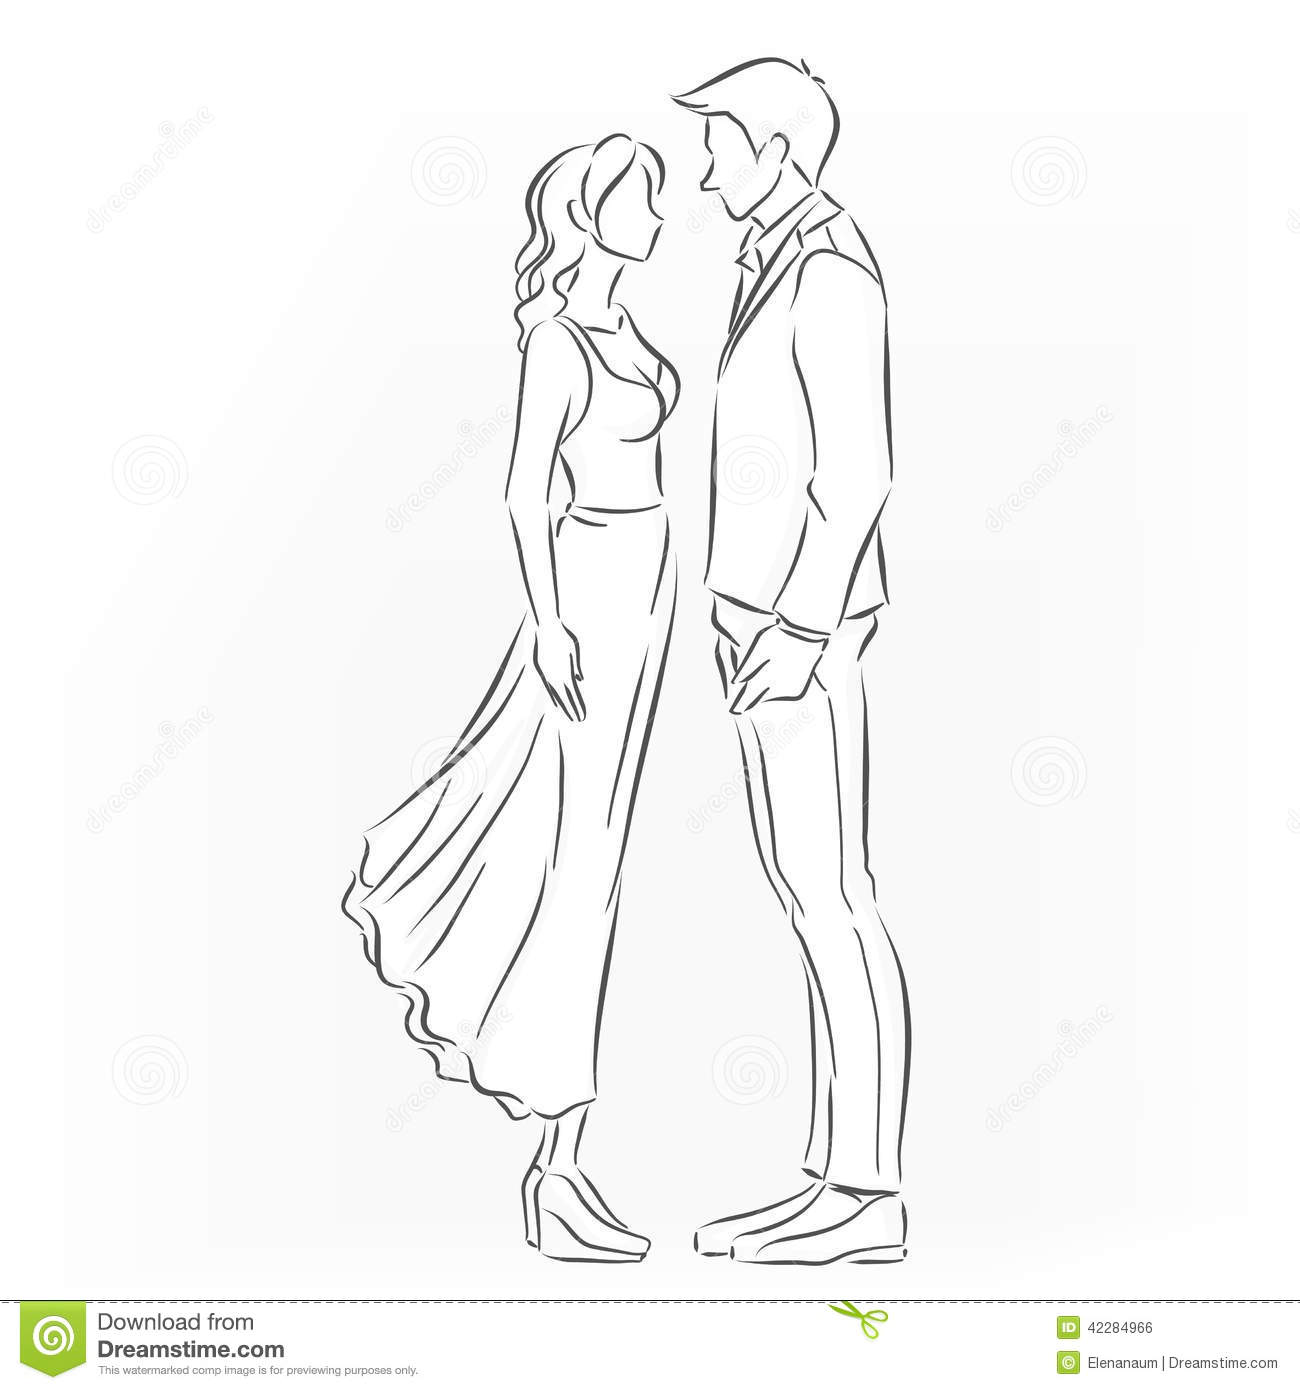 Romantic Couple That Want To Kiss Stock Vector - Image ...